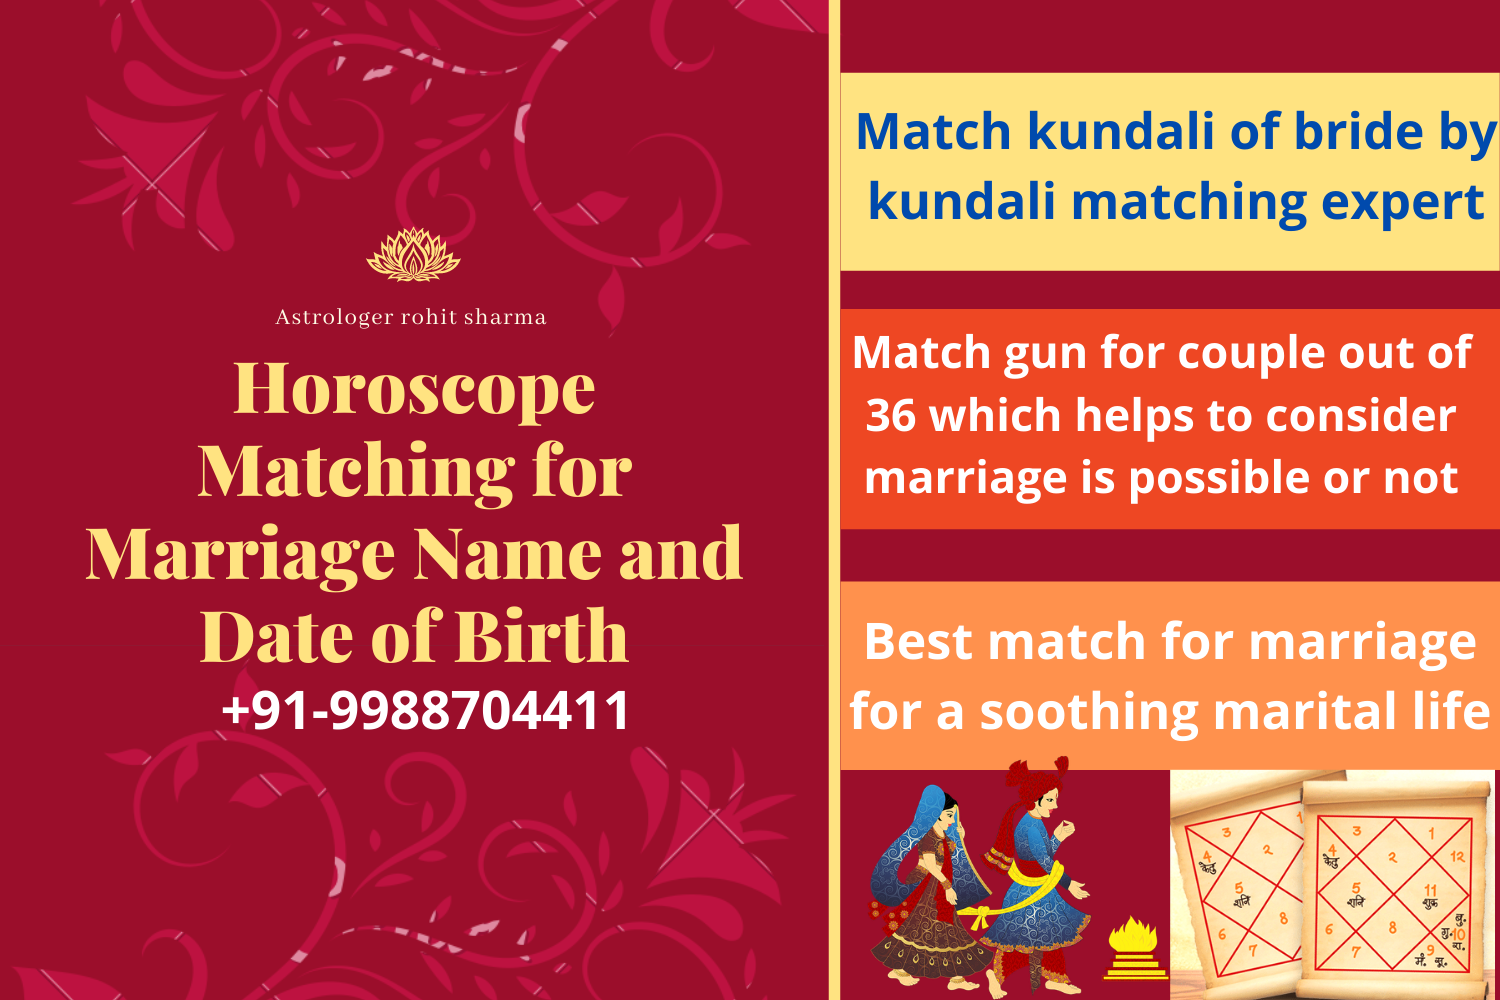 Horoscope Matching for Marriage Name and Date of Birth